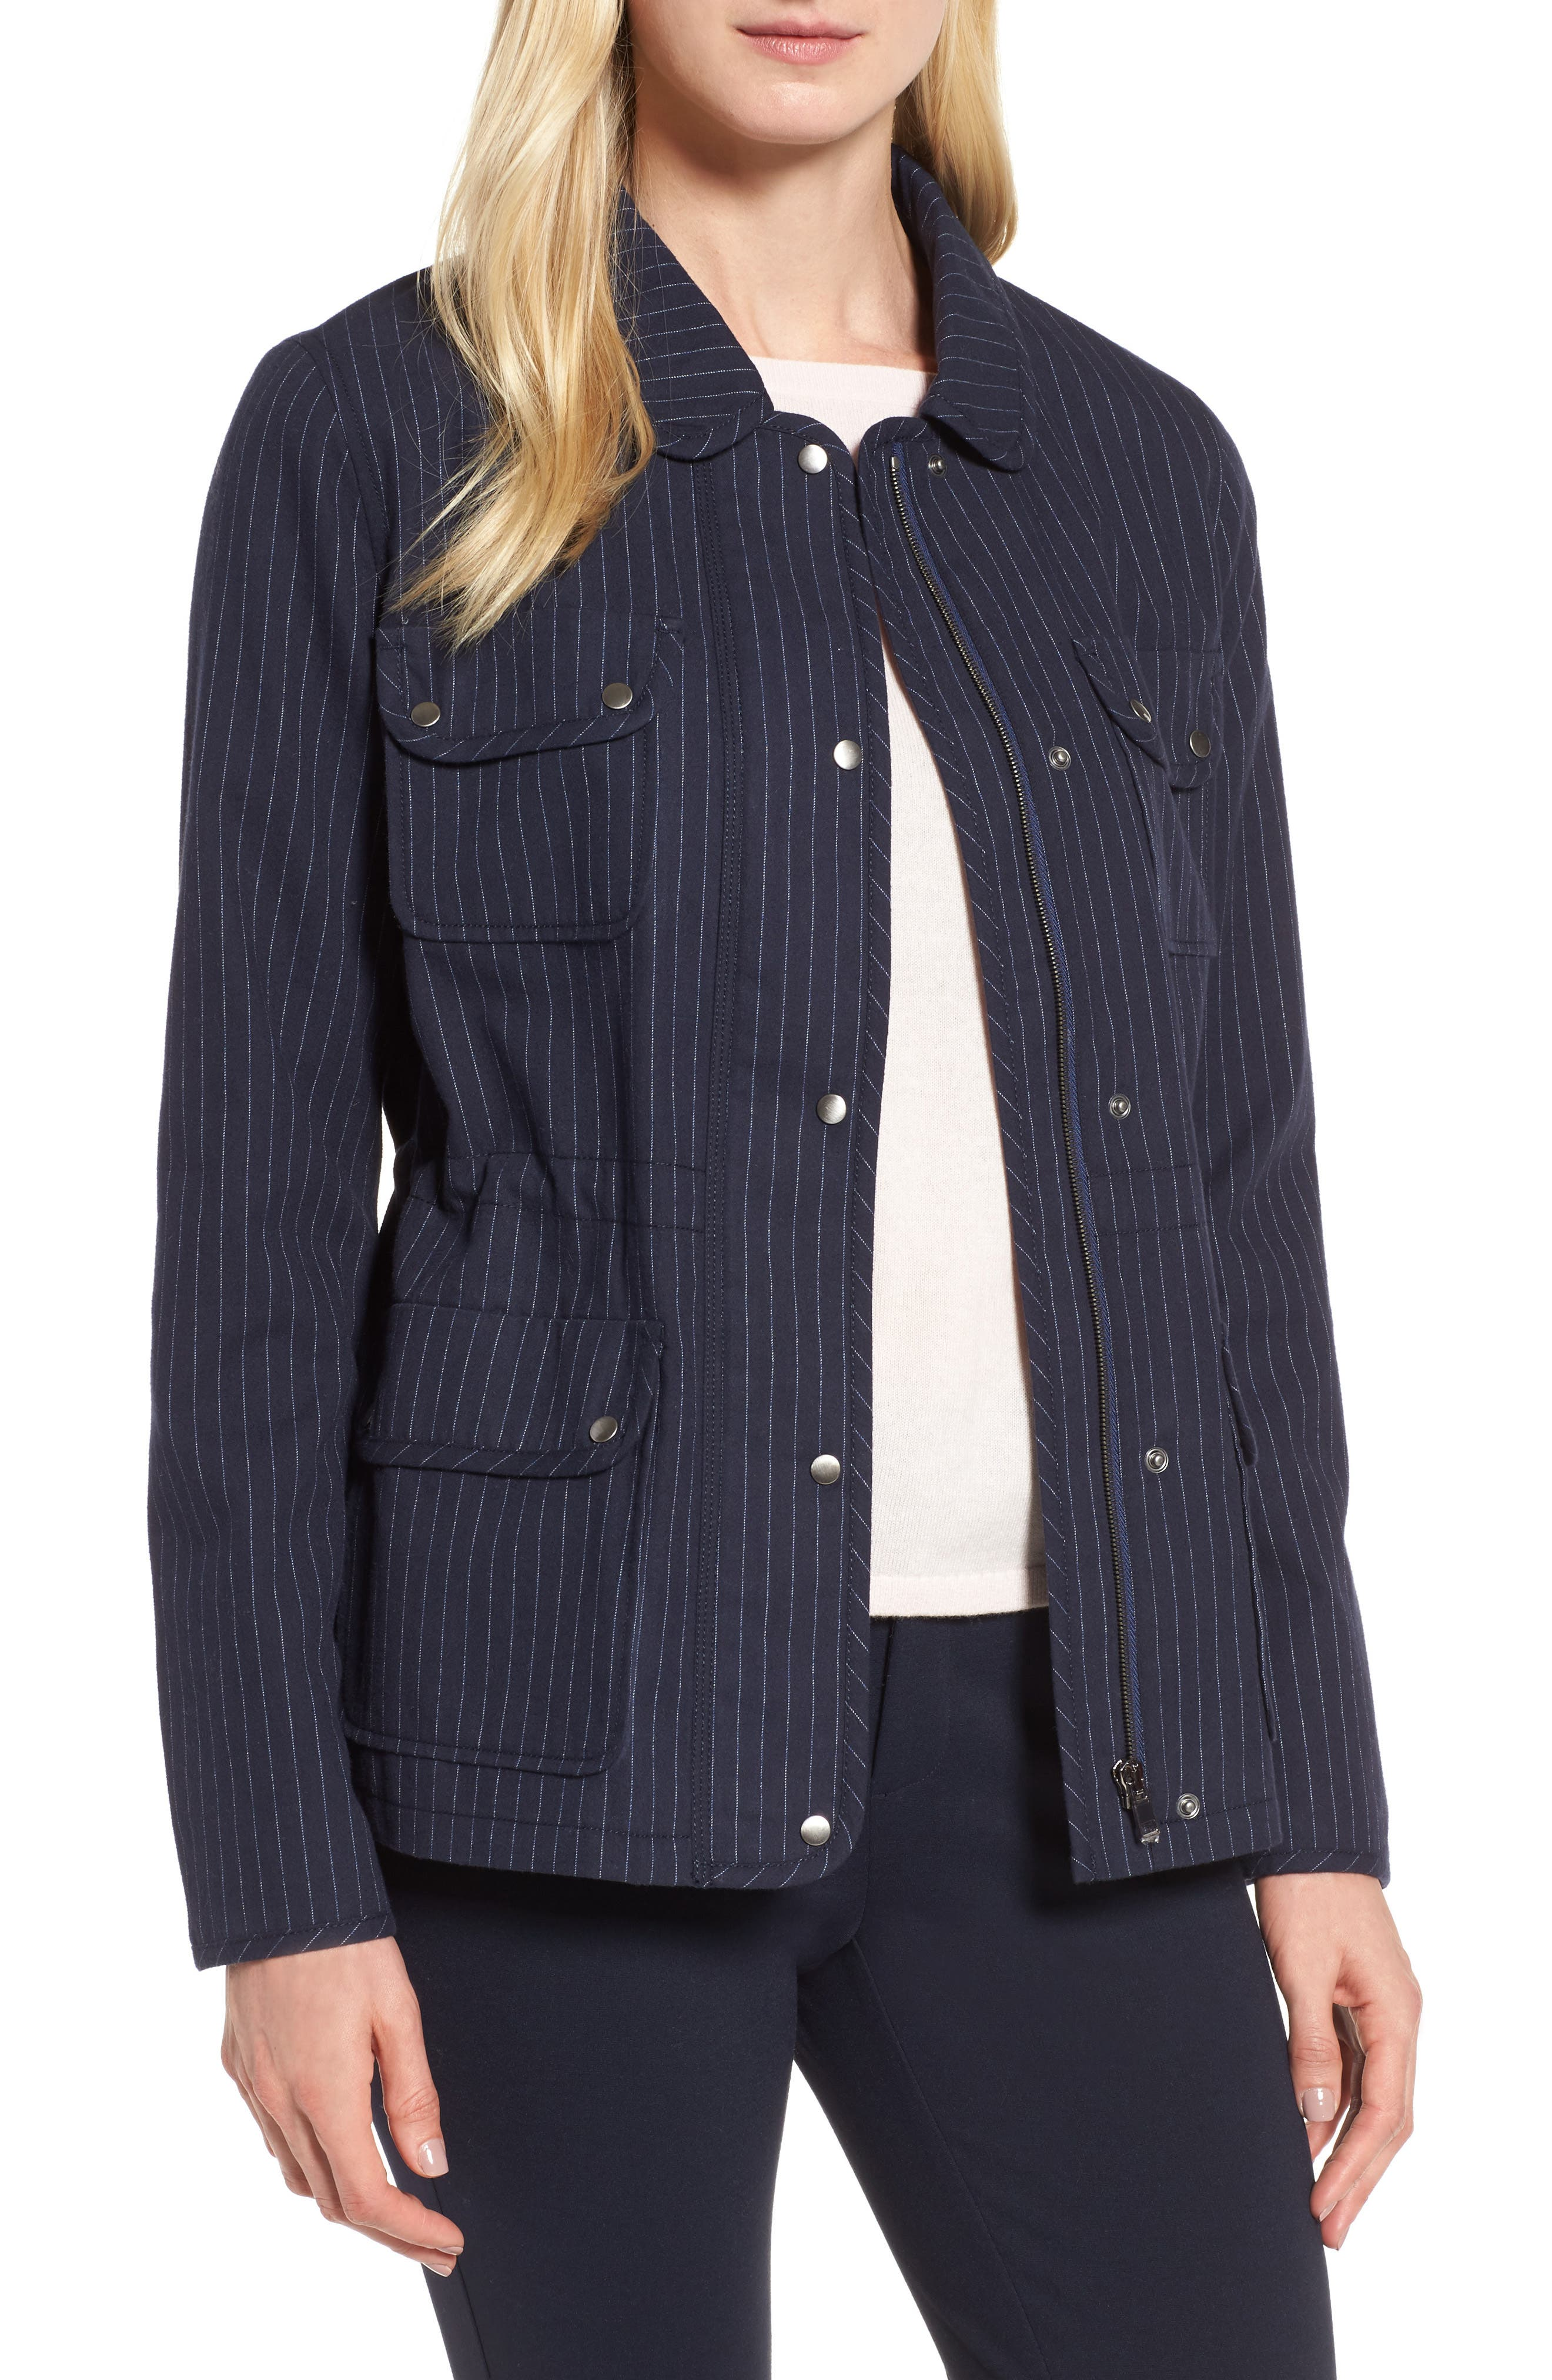 Pinstripe Utility Jacket,                         Main,                         color, Navy- Ivory Pinstripe